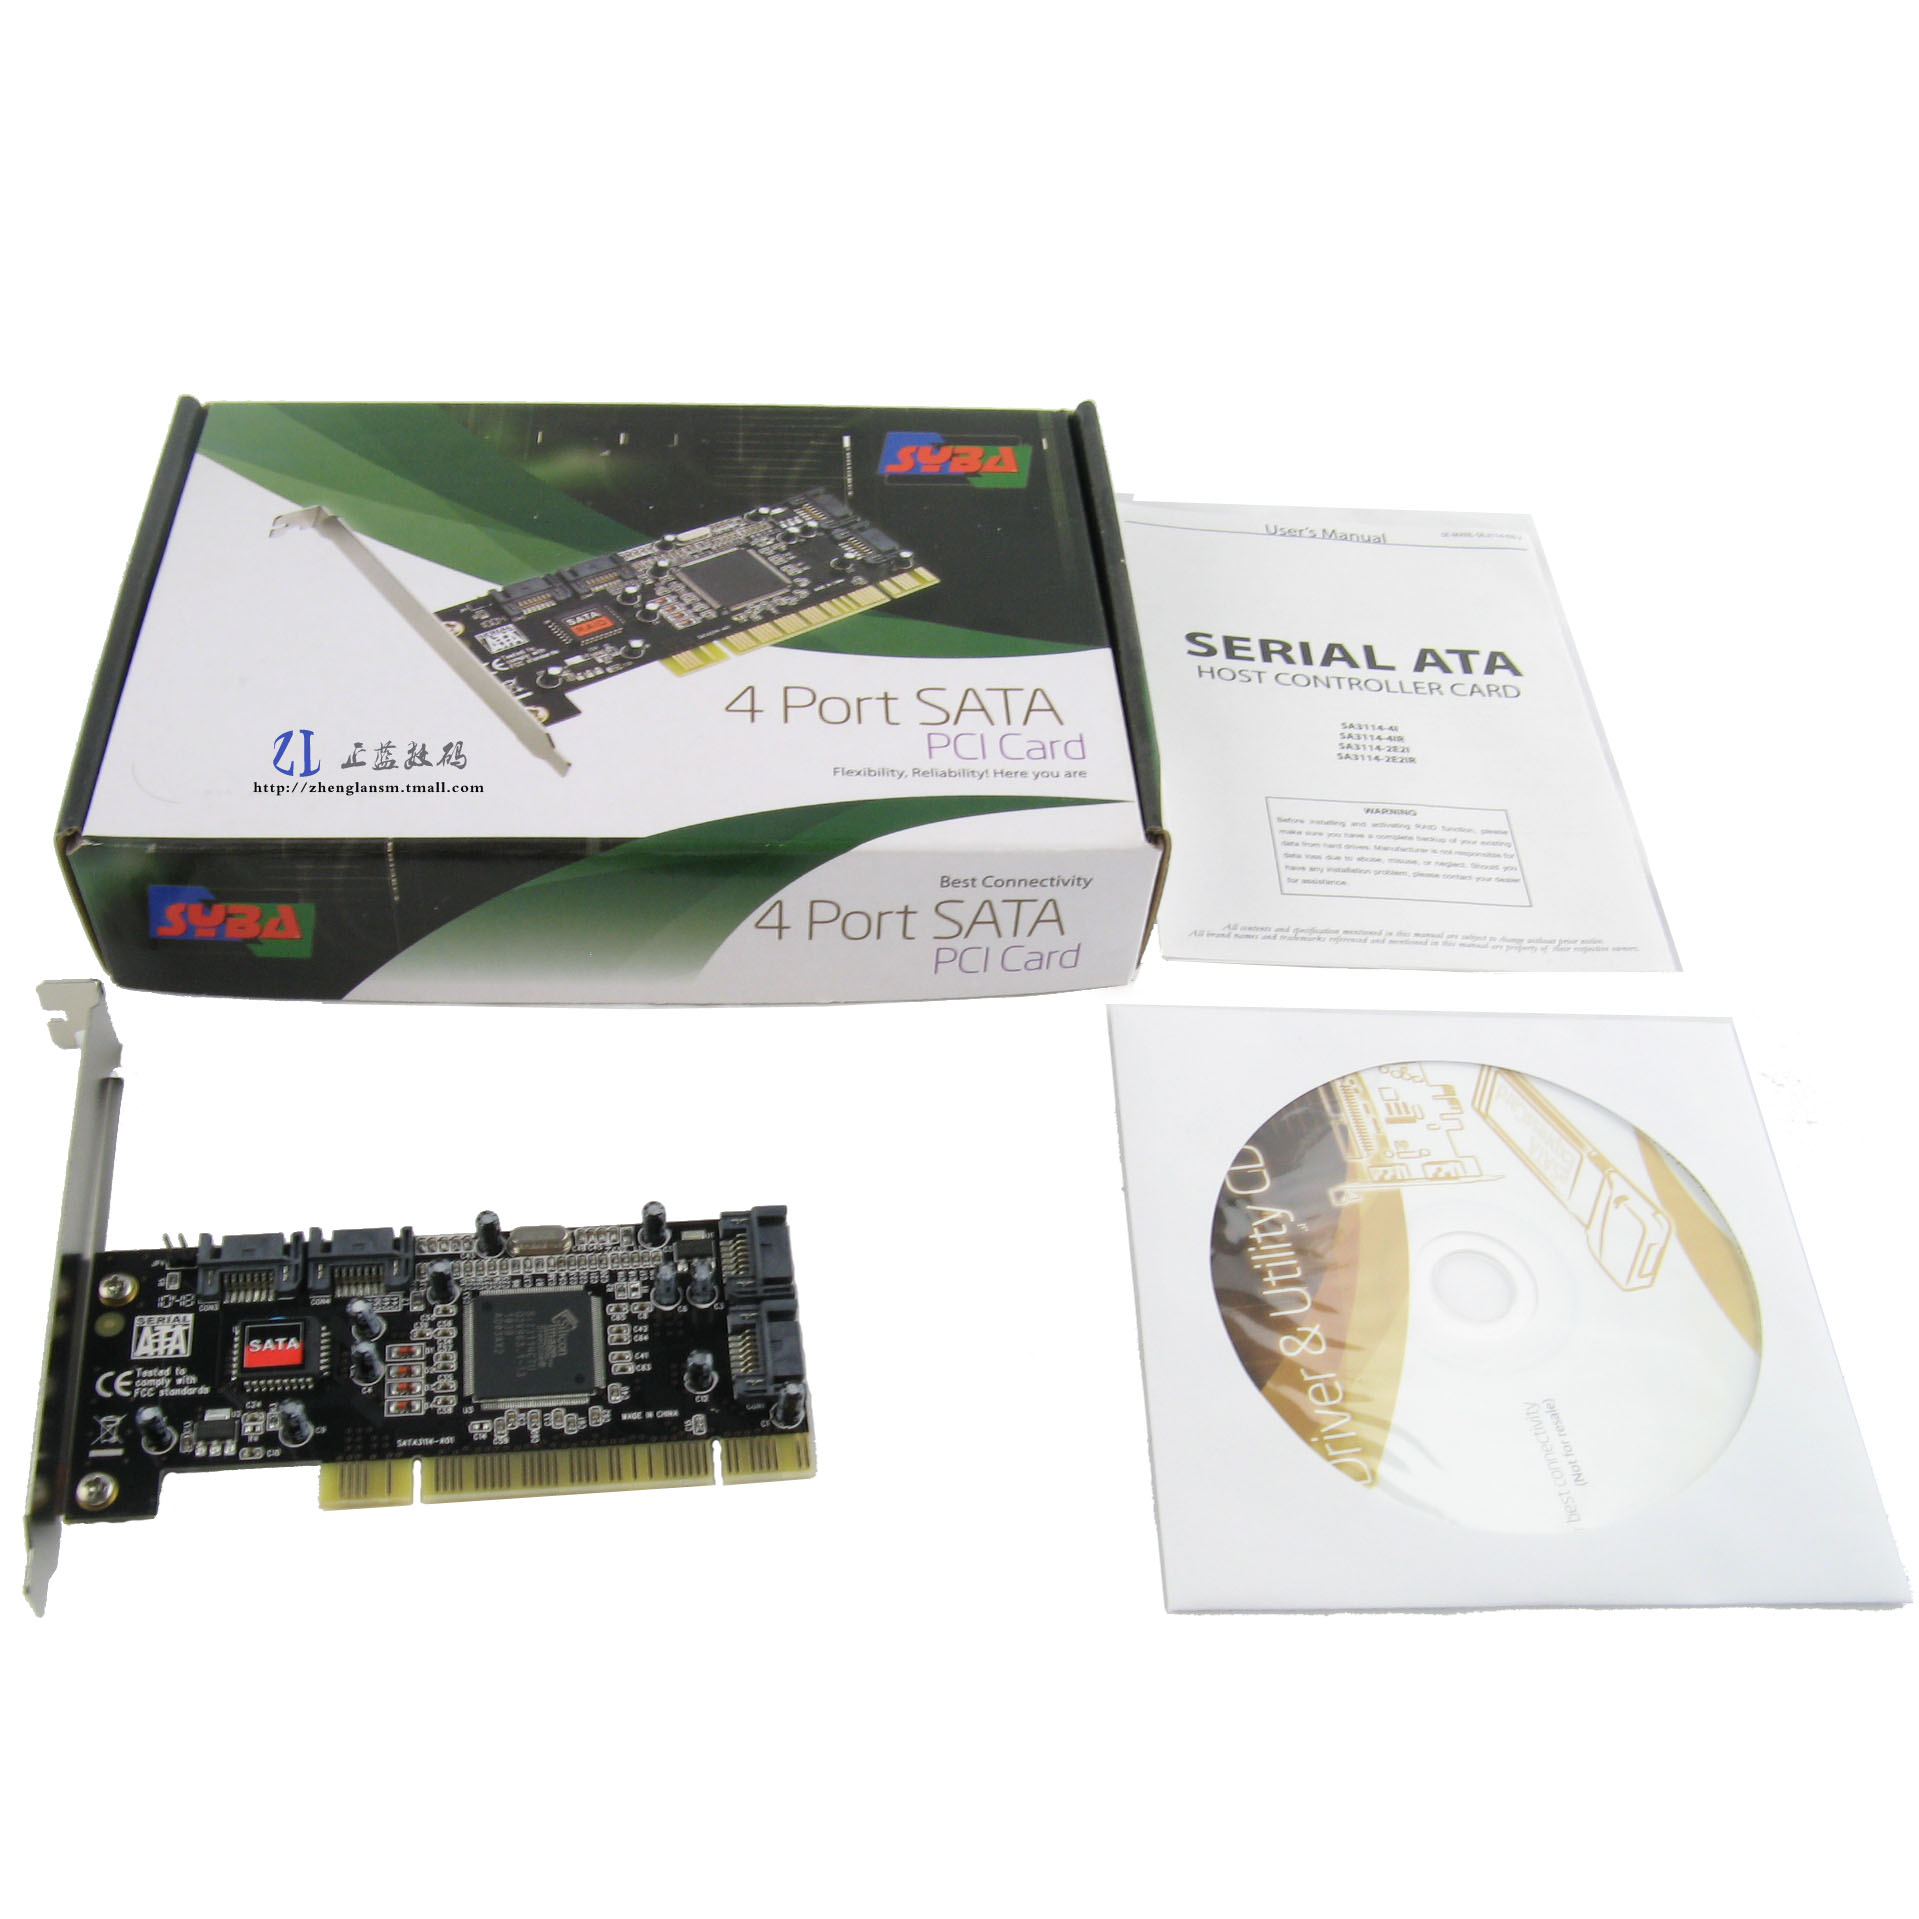 Mmui Syba Sata Disk Array Card Sata Card 4 Supports 8 0t